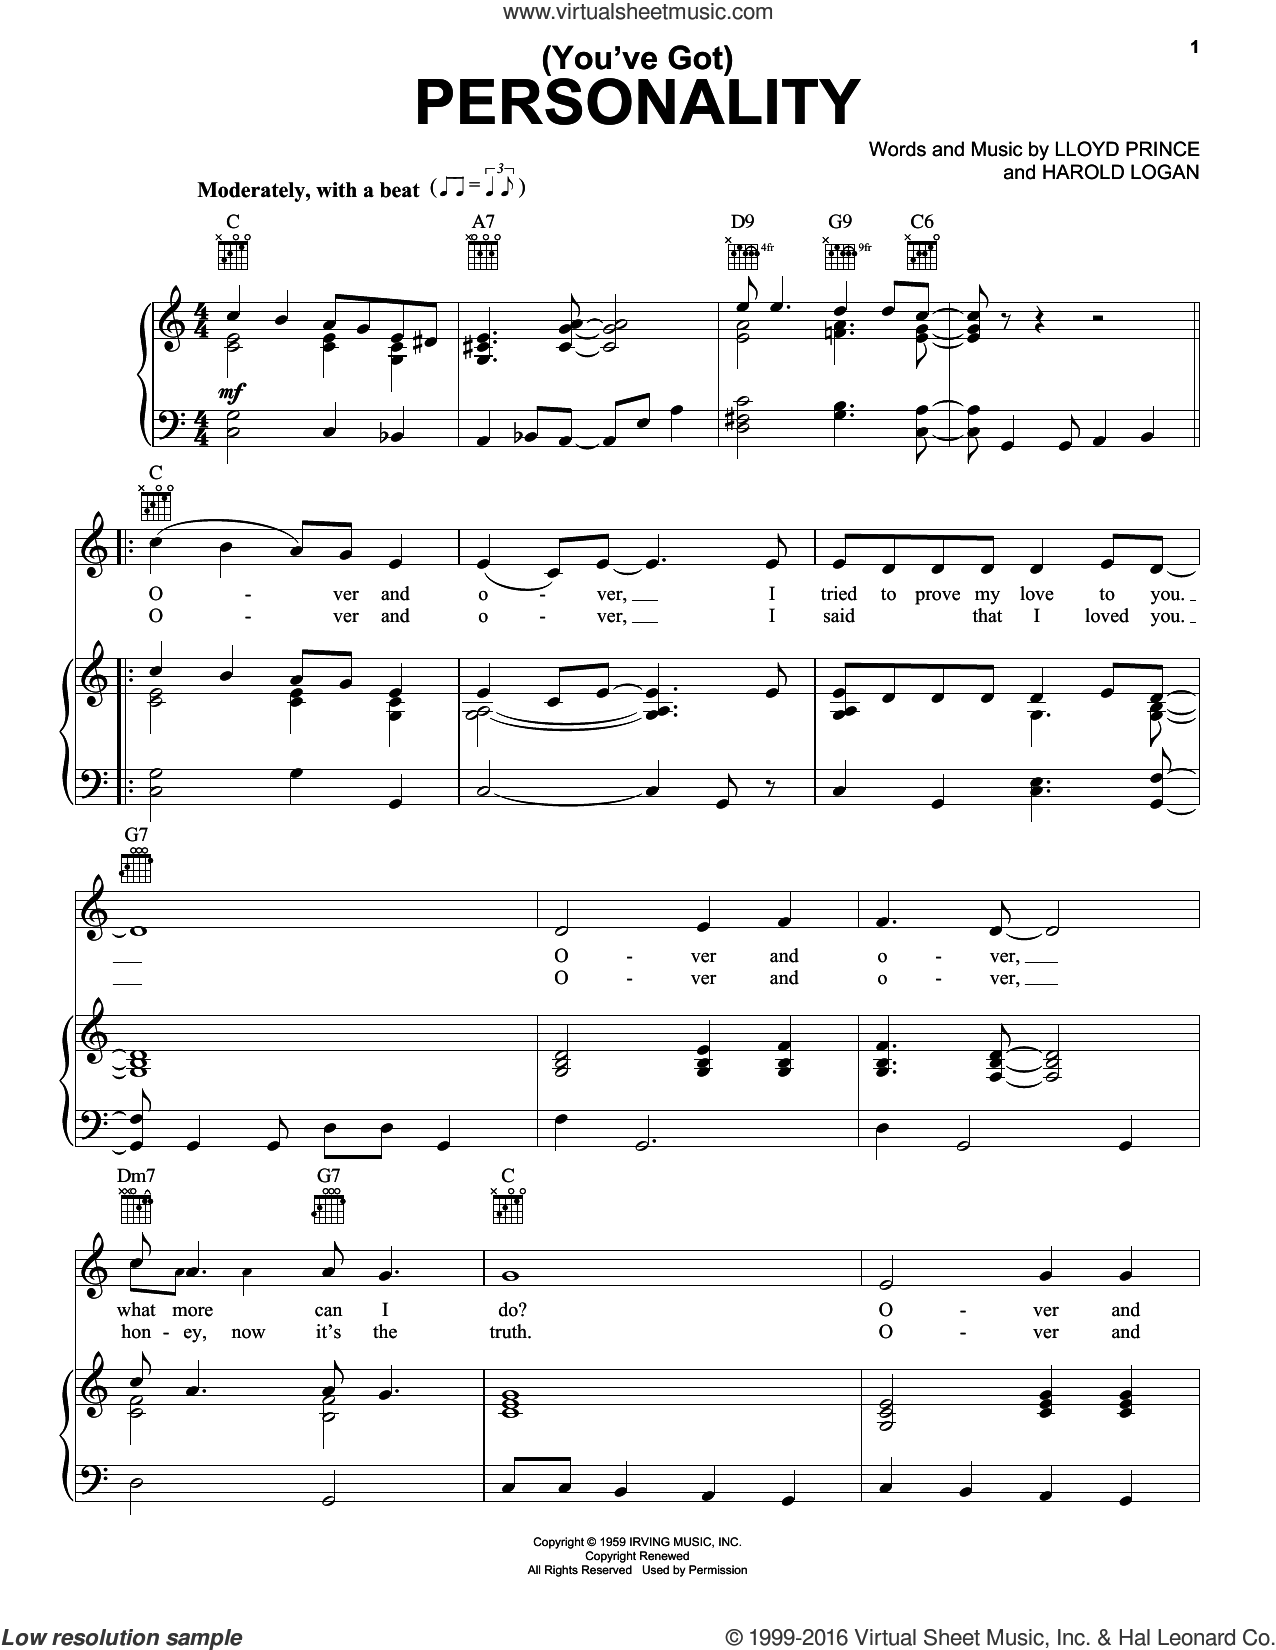 (You've Got) Personality sheet music for voice, piano or guitar by Harold Logan